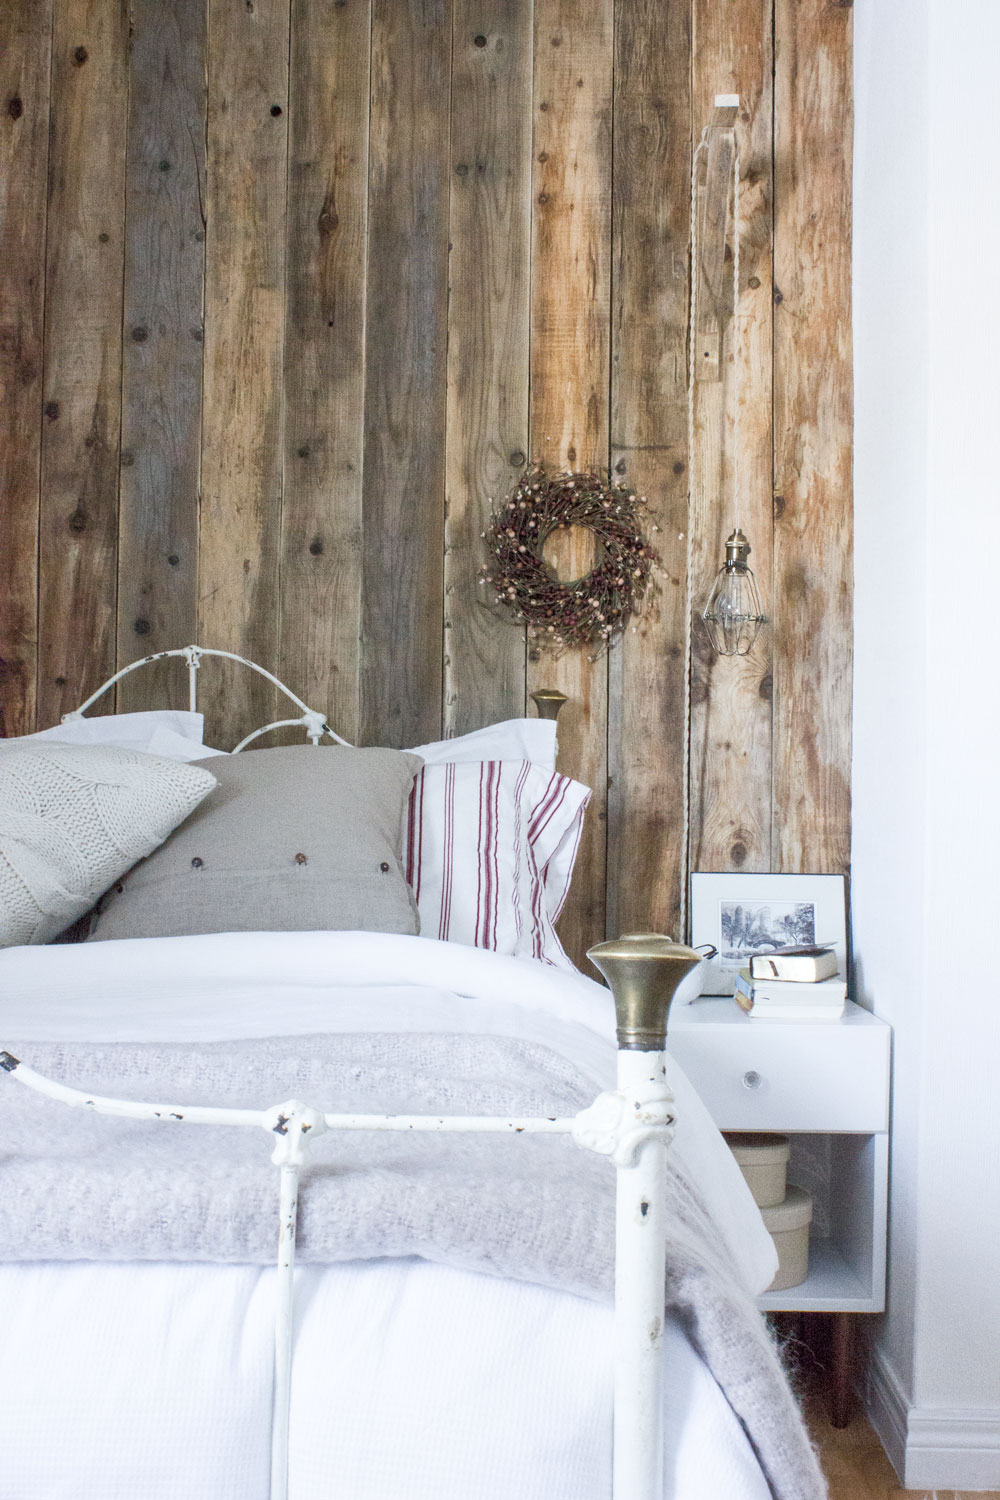 Refreshed Designs - reclaimed barnwood walls in the guest bedroom